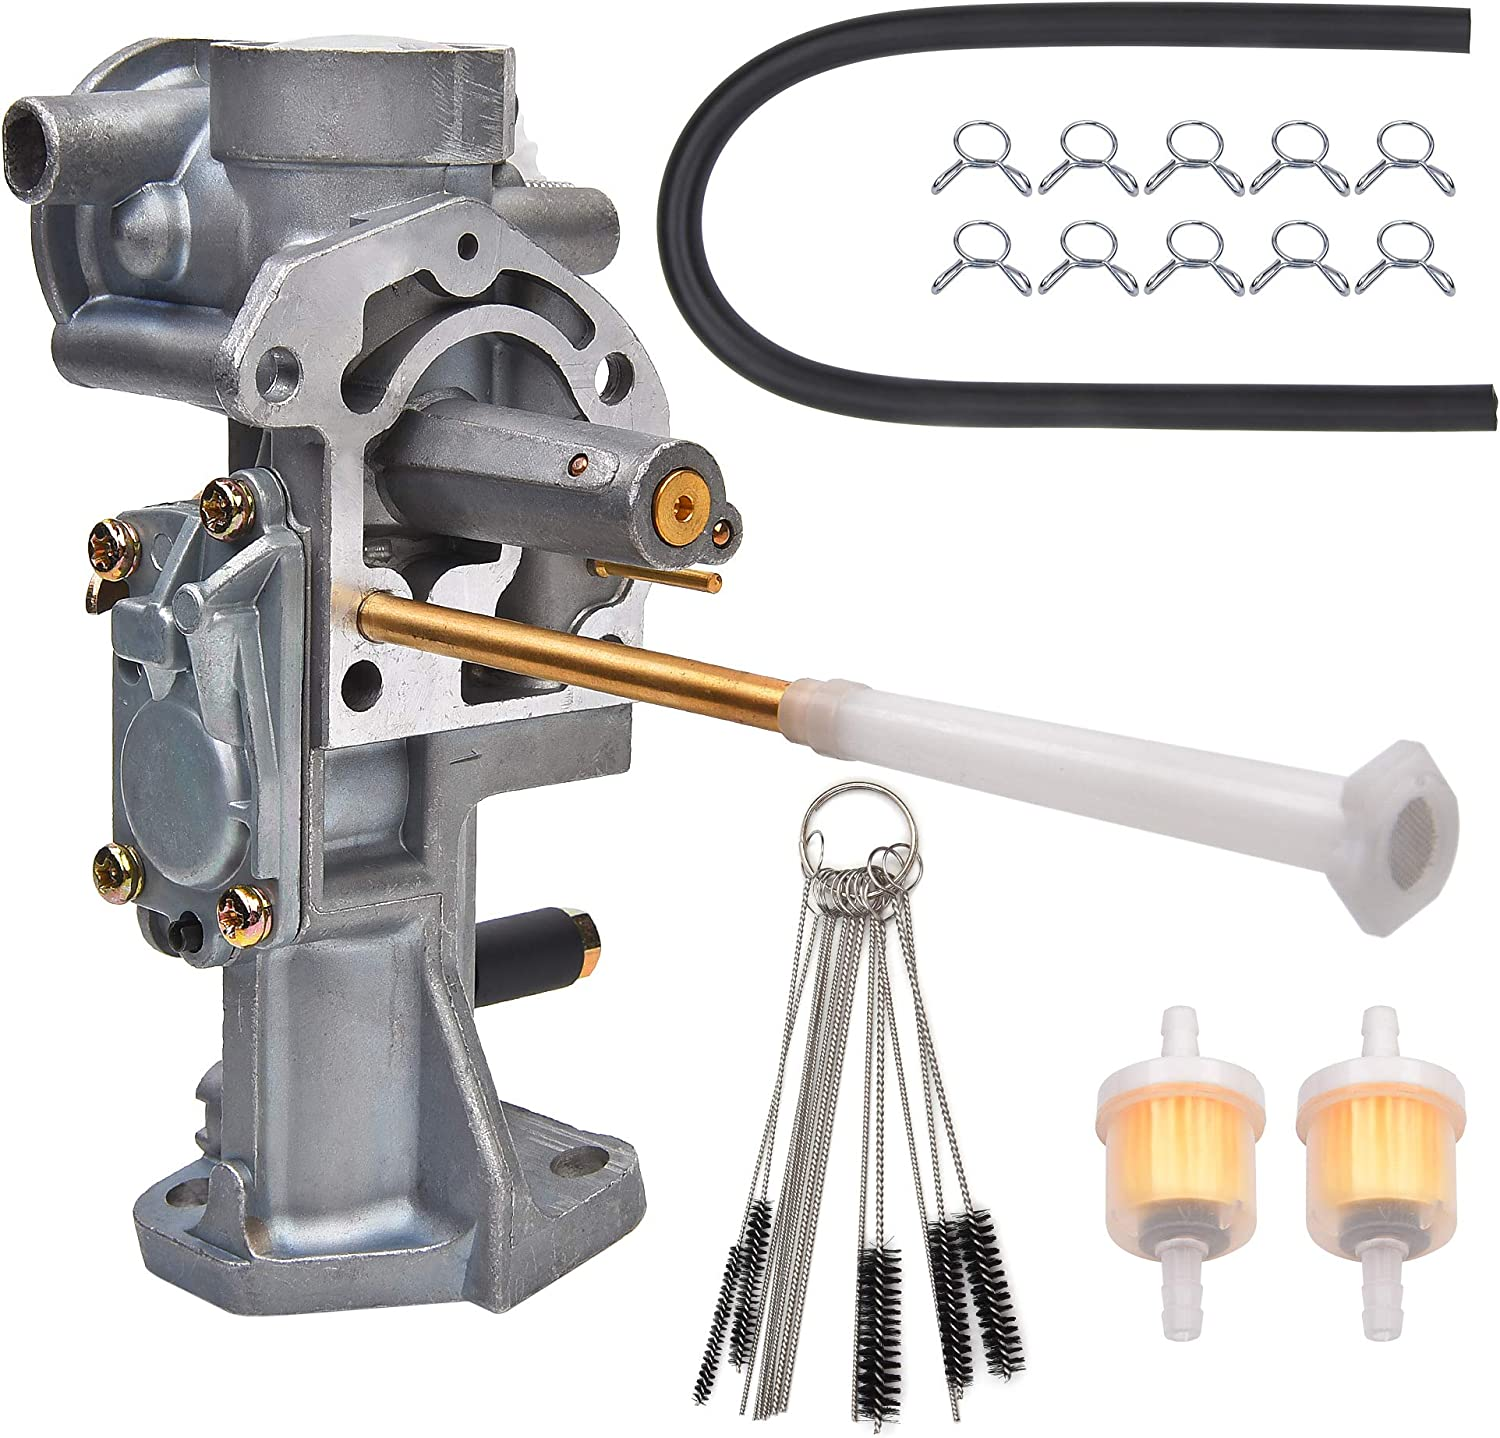 shop 397135 5 HP Carburetor We OFFer at cheap prices Replacement for L 135200 130200 Head 1332